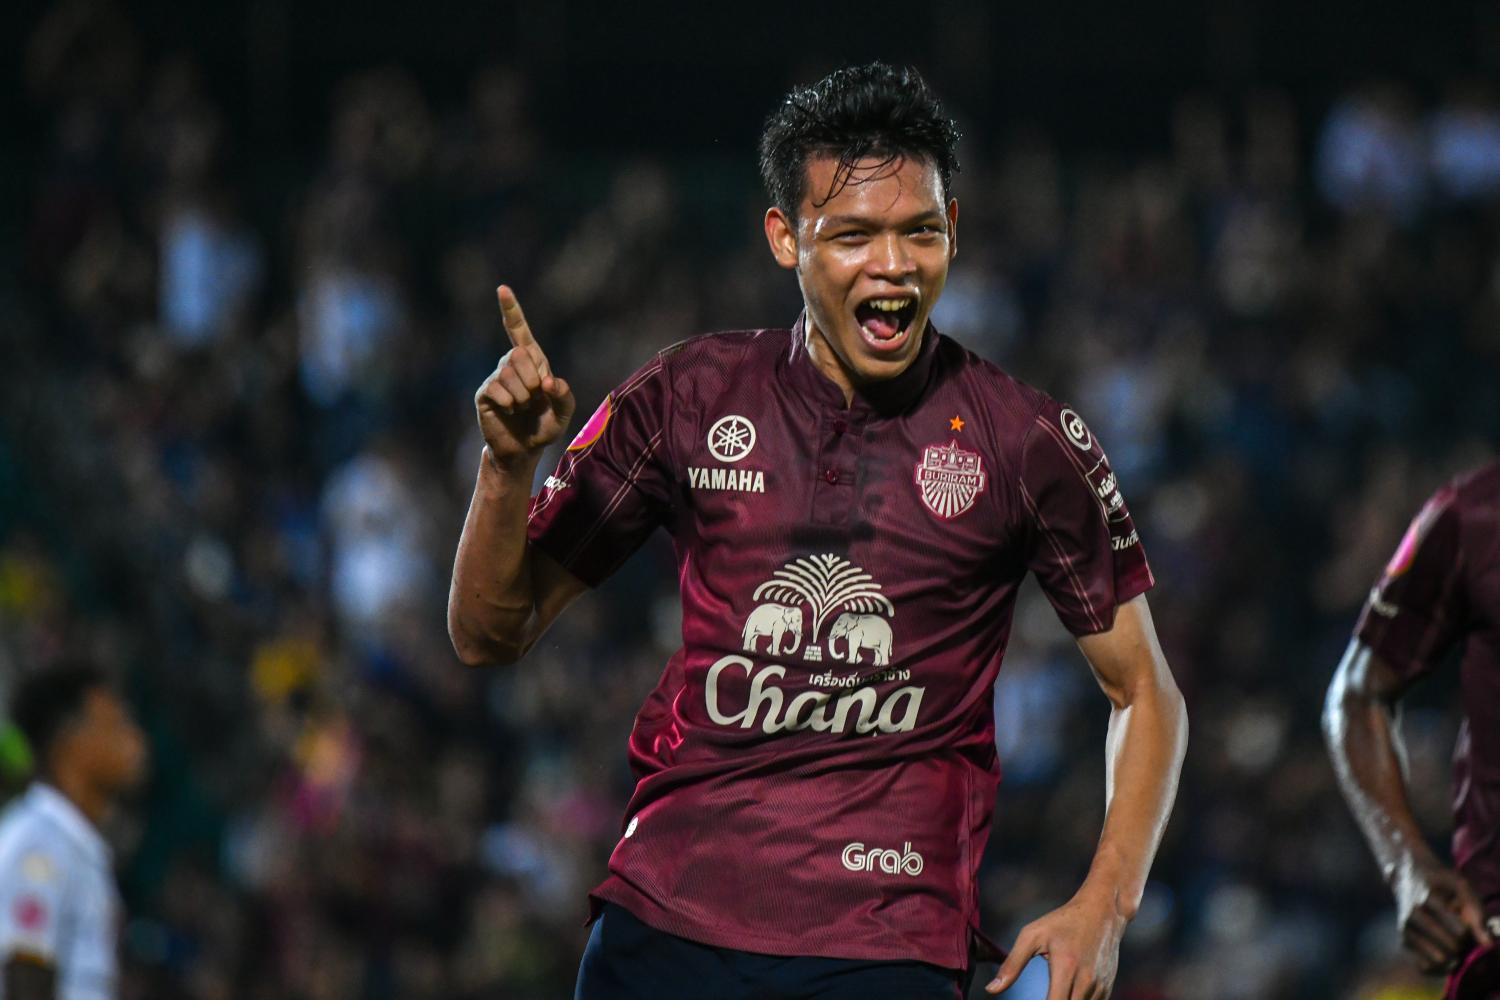 Buriram United's Supachai Chaided reacts after scoring a goal. PR